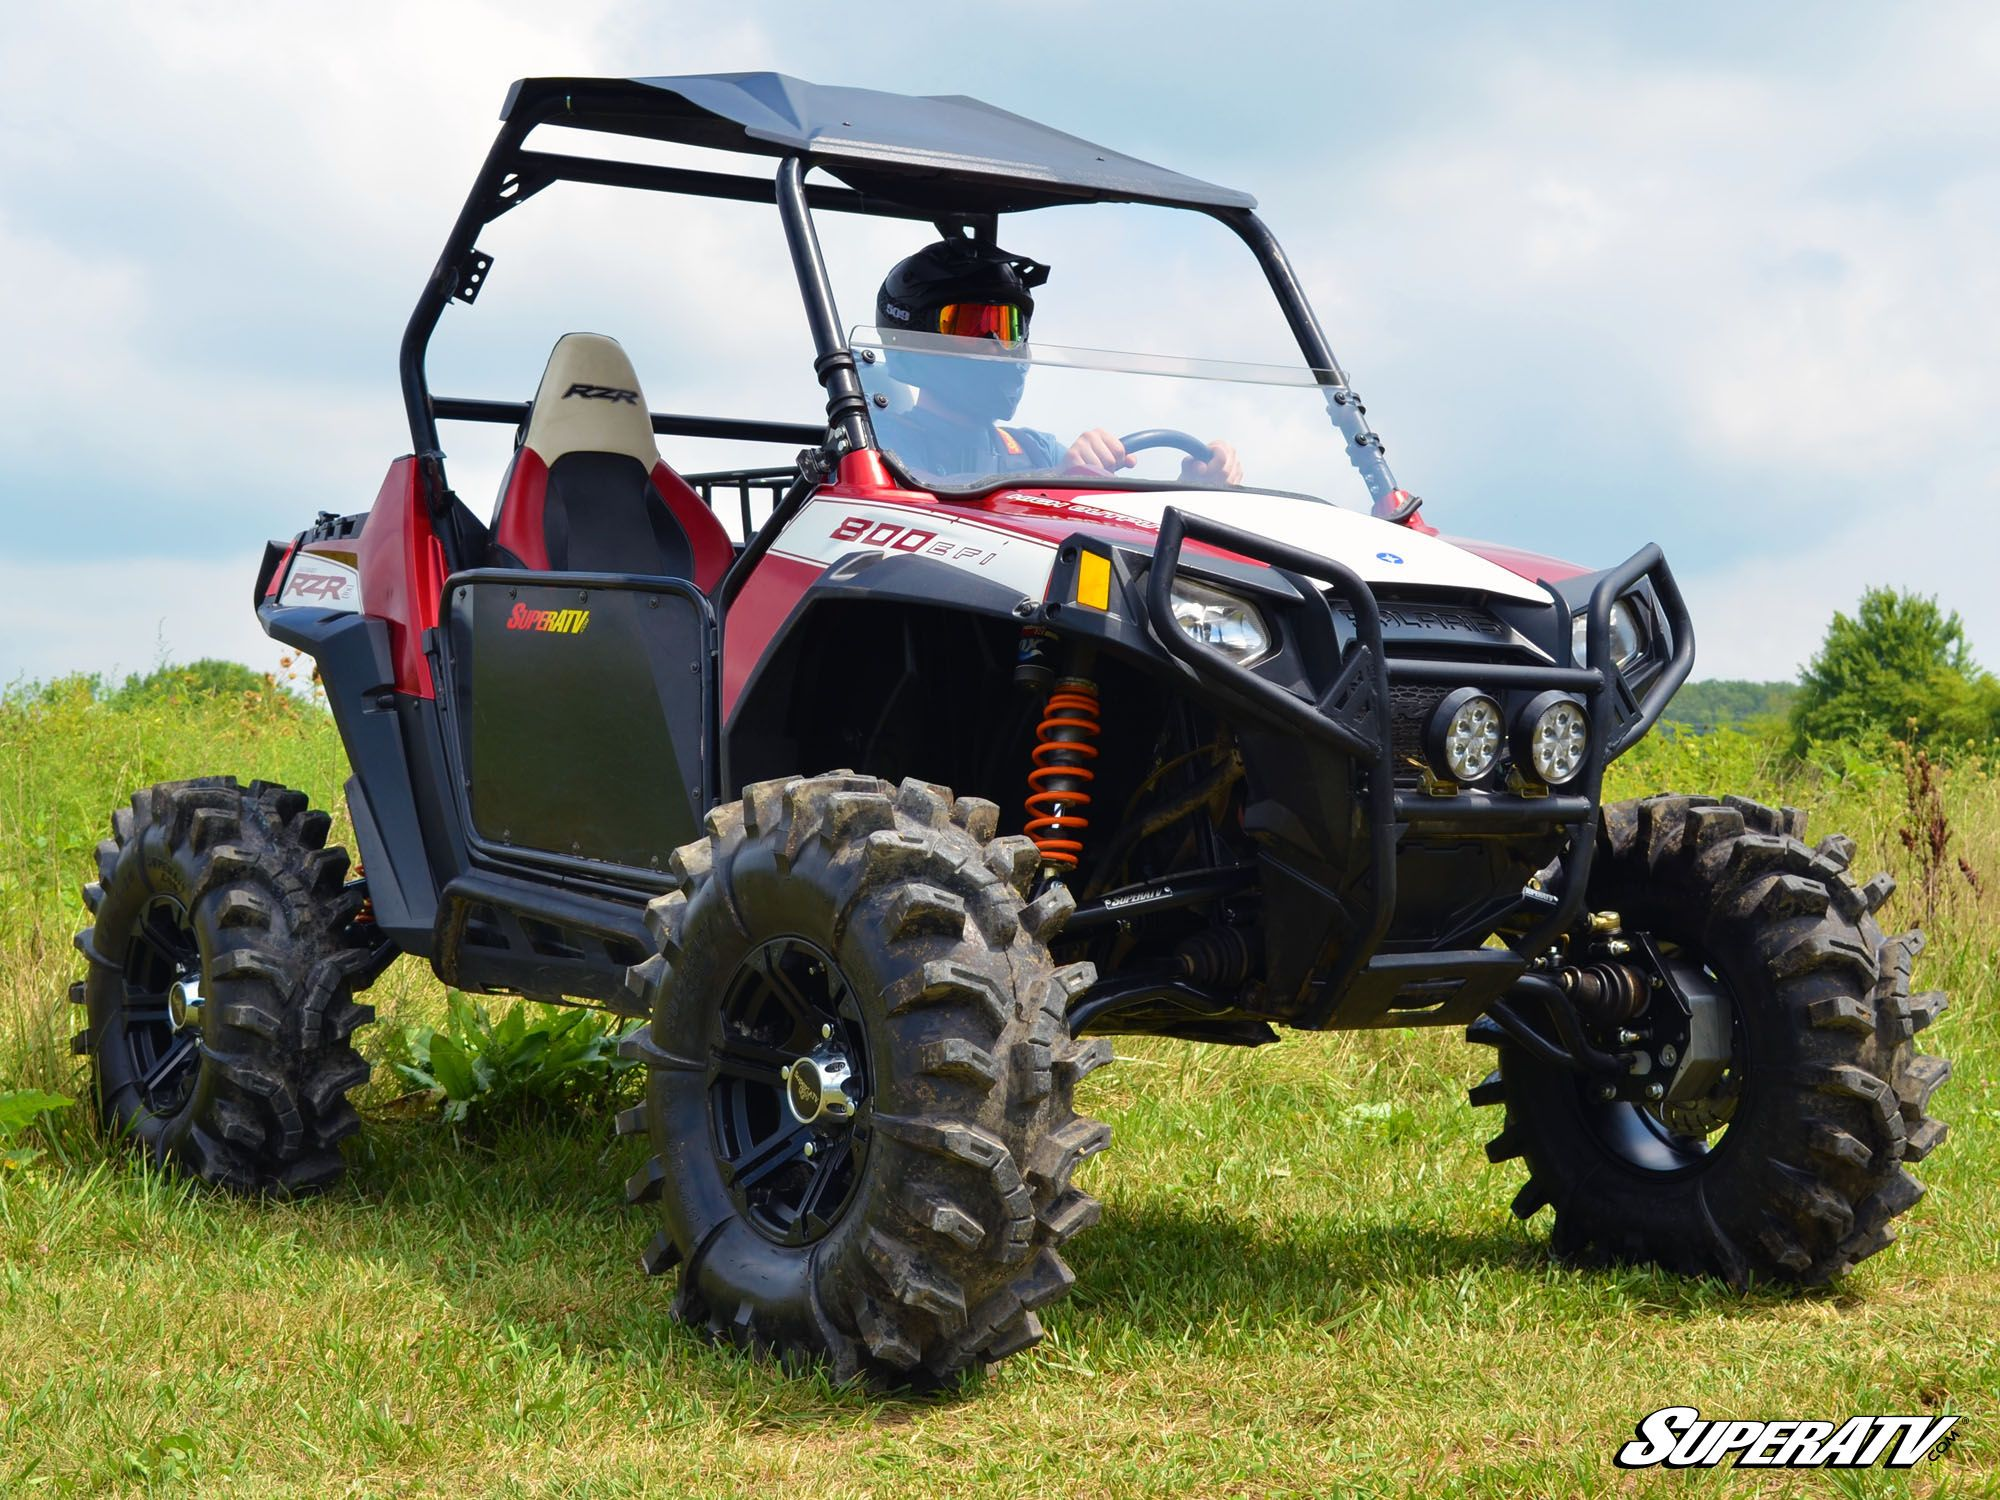 super atv polaris rzr rzr s rzr 4 800 6 portal gear lift. Black Bedroom Furniture Sets. Home Design Ideas